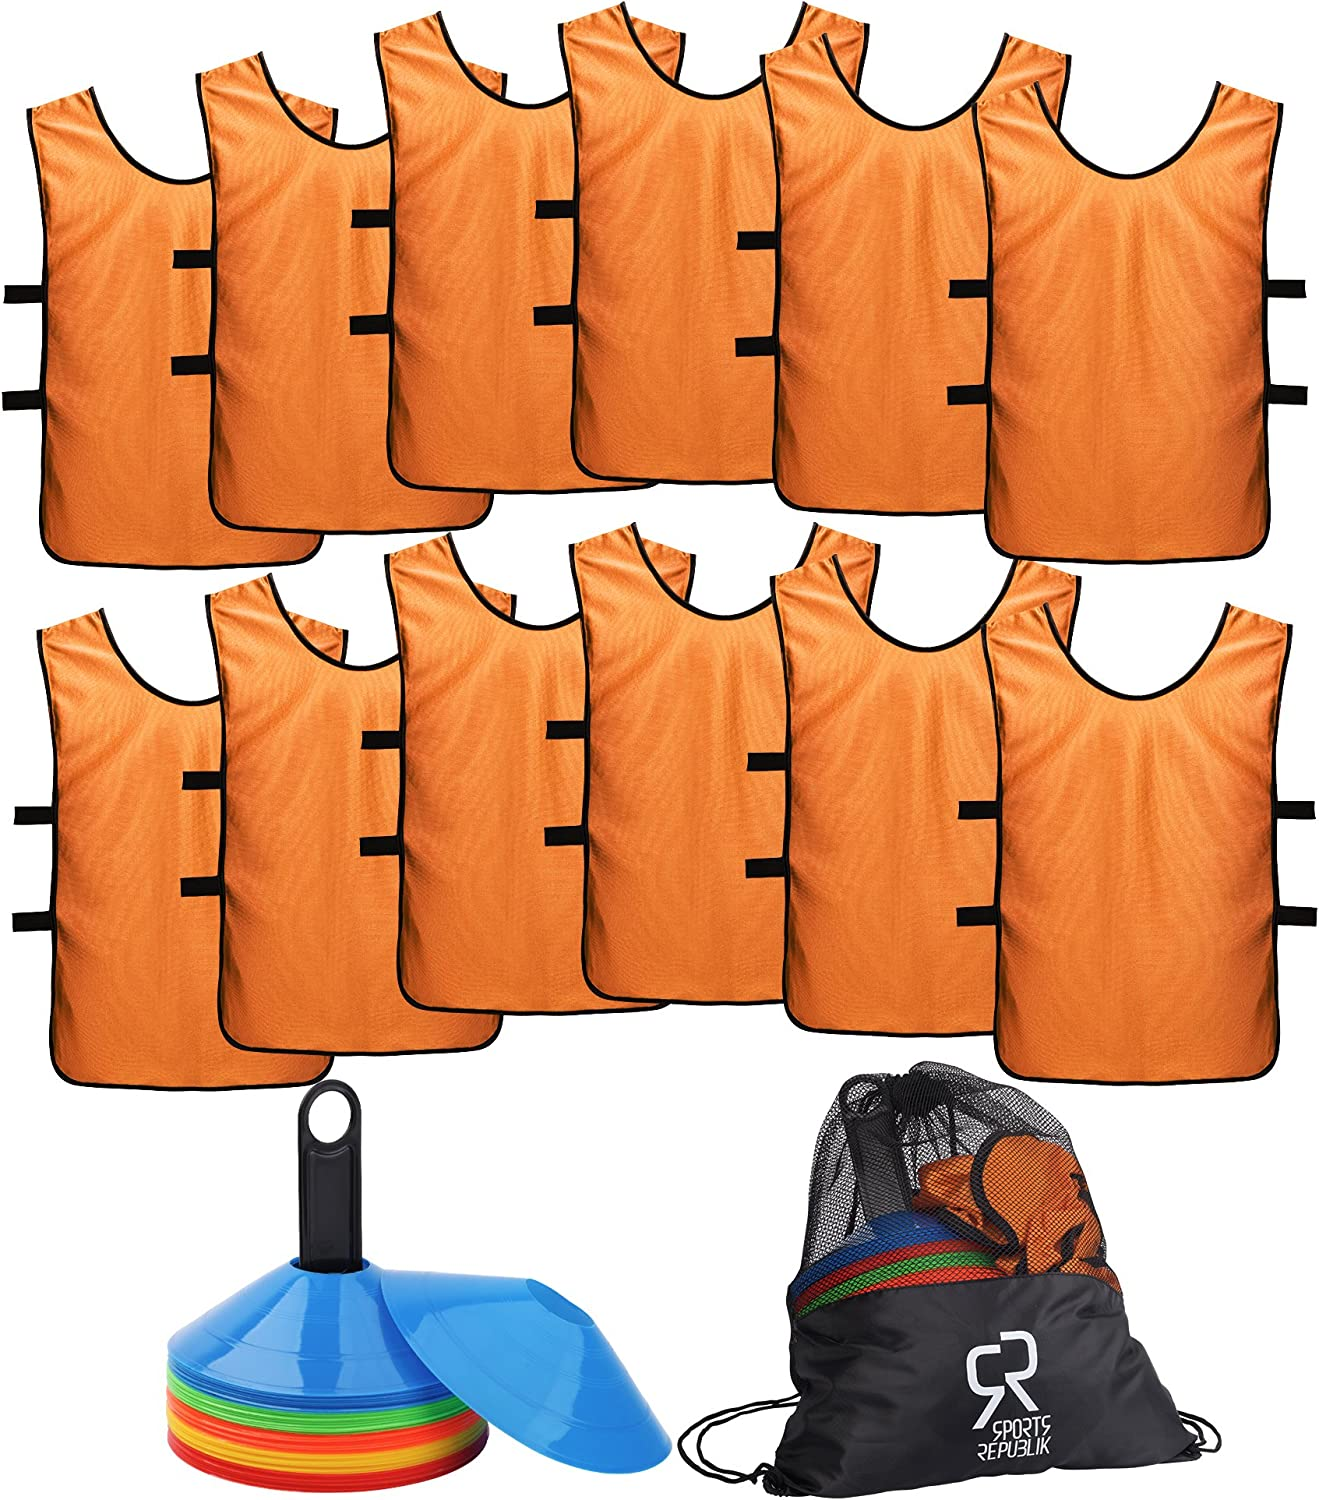 Soccer Cones (Set of 50) and Sports Jerseys Pinnies (12Pack)  Perfect Disc Cones for Basketball Drills, Complete Soccer Training Equipment  Agility Cones for Soccer Drills or Football Equipment